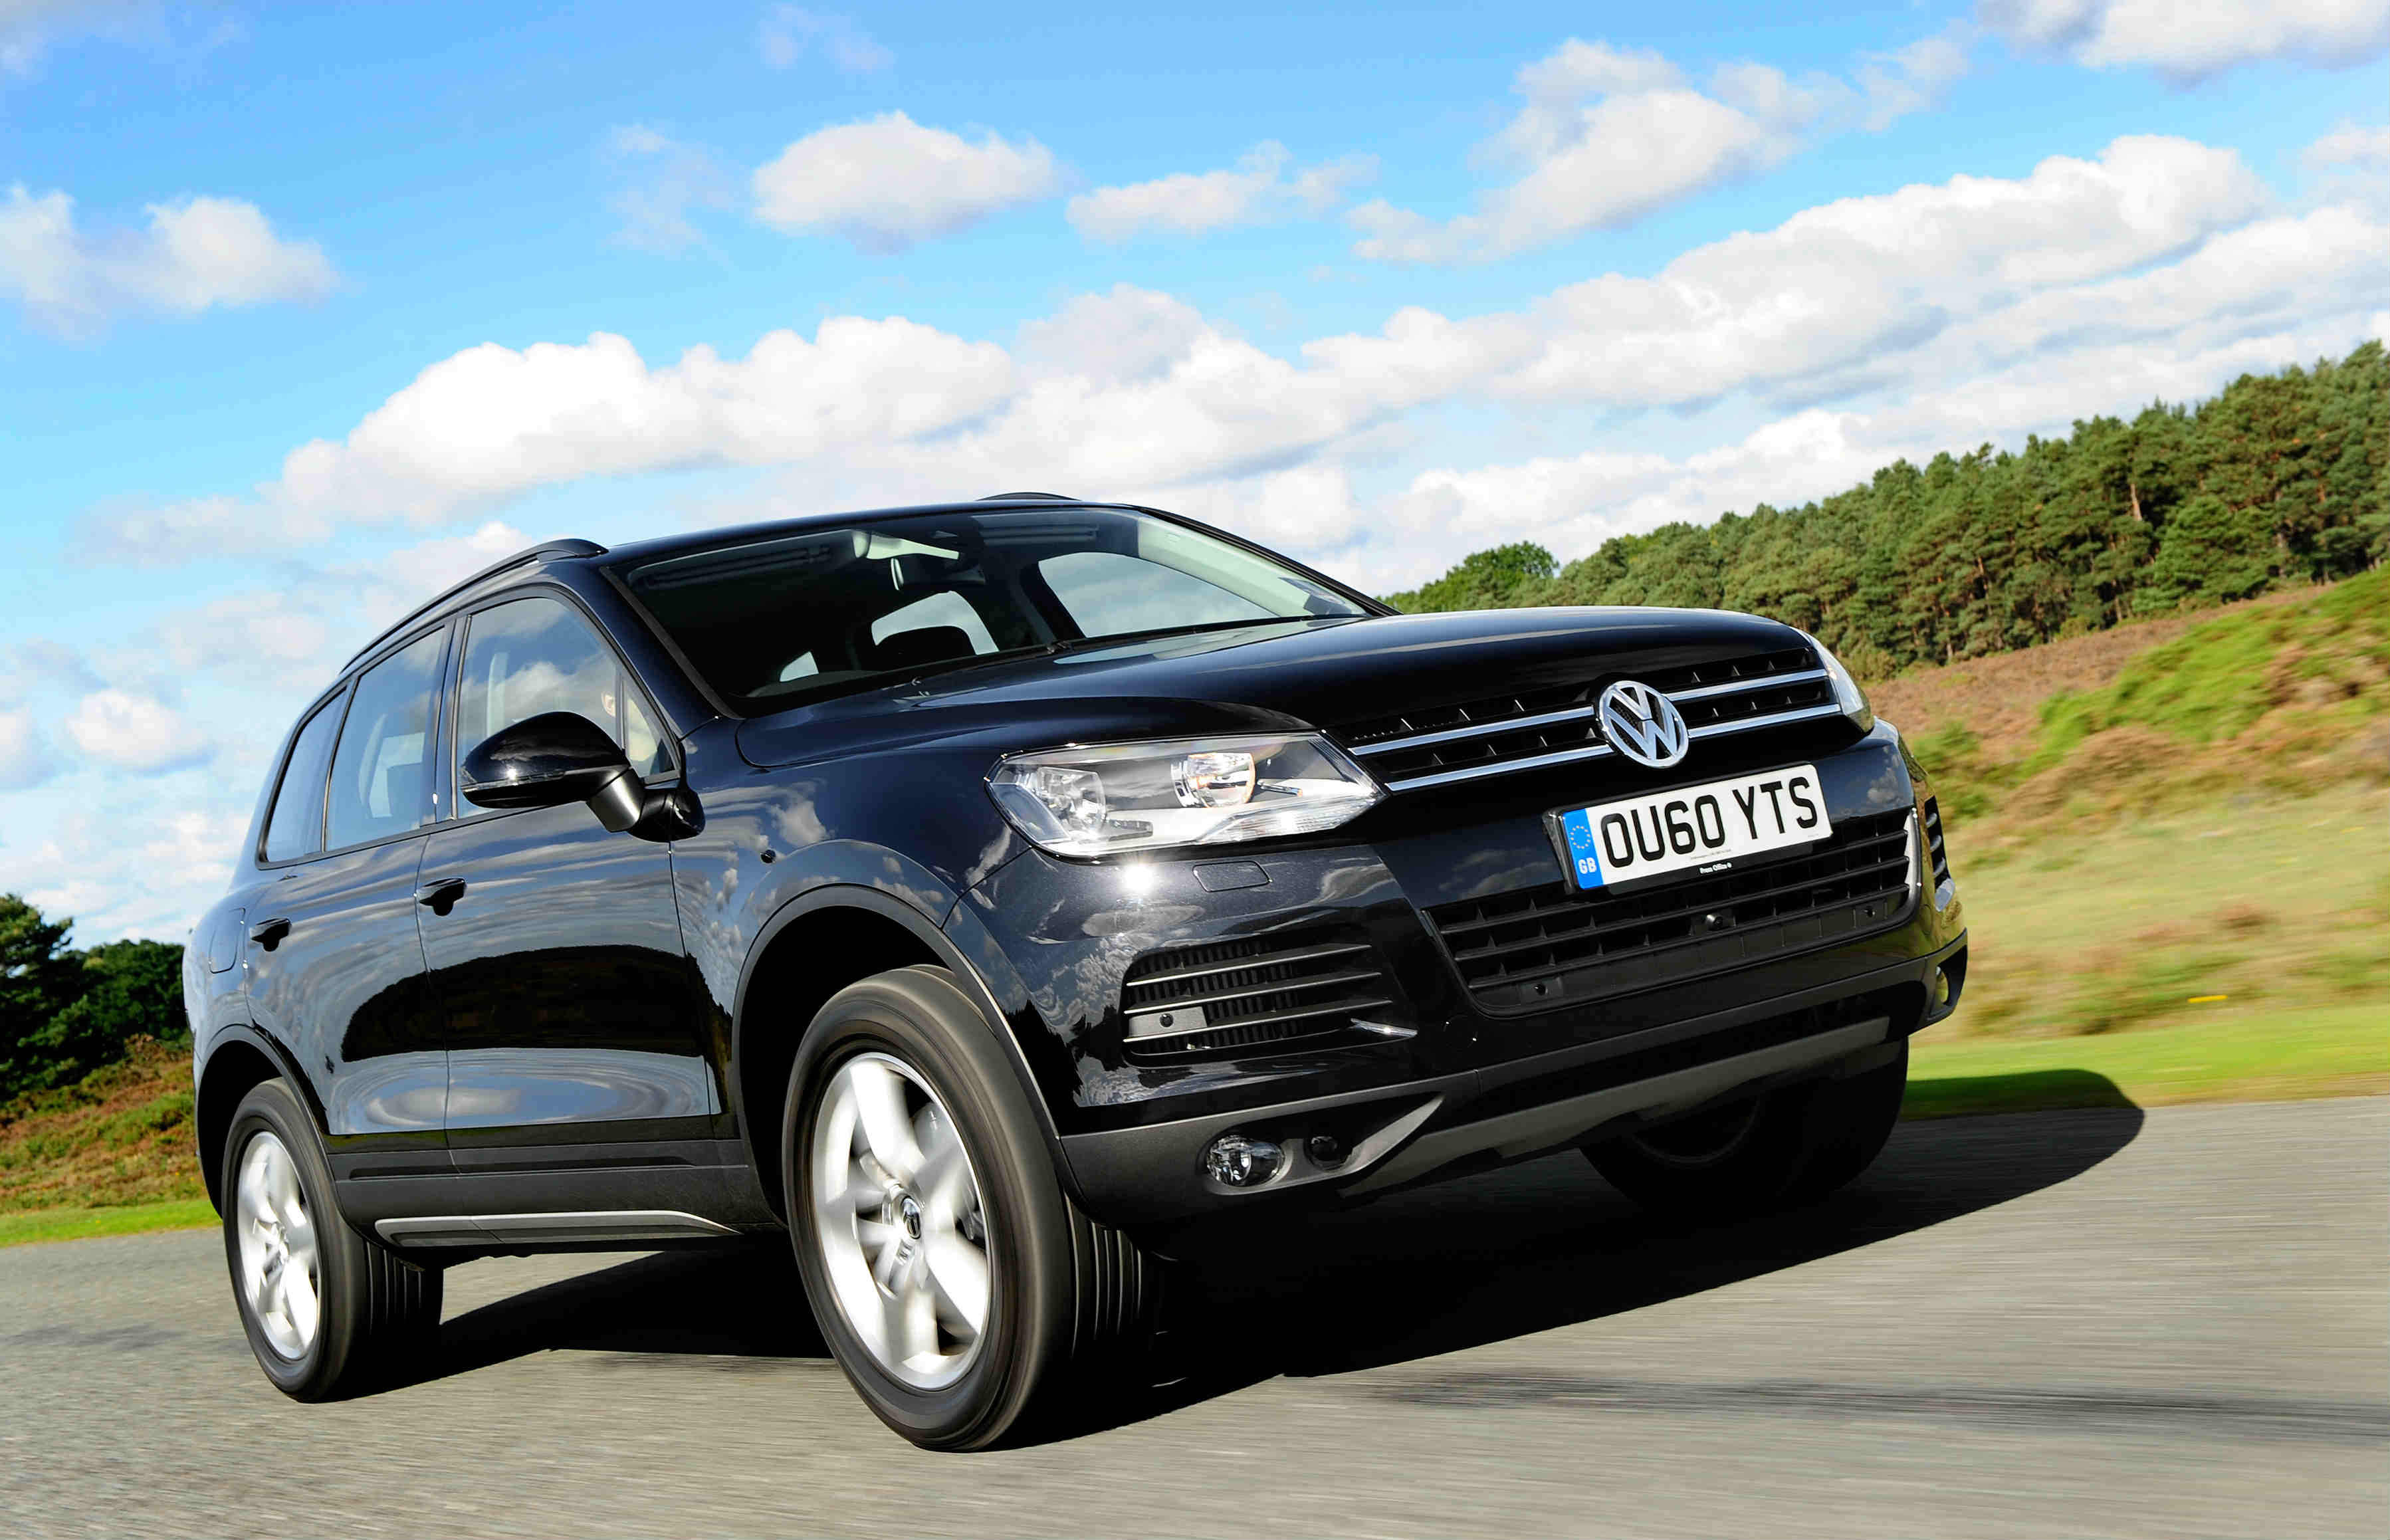 image of a black volkswagen touareg car exterior